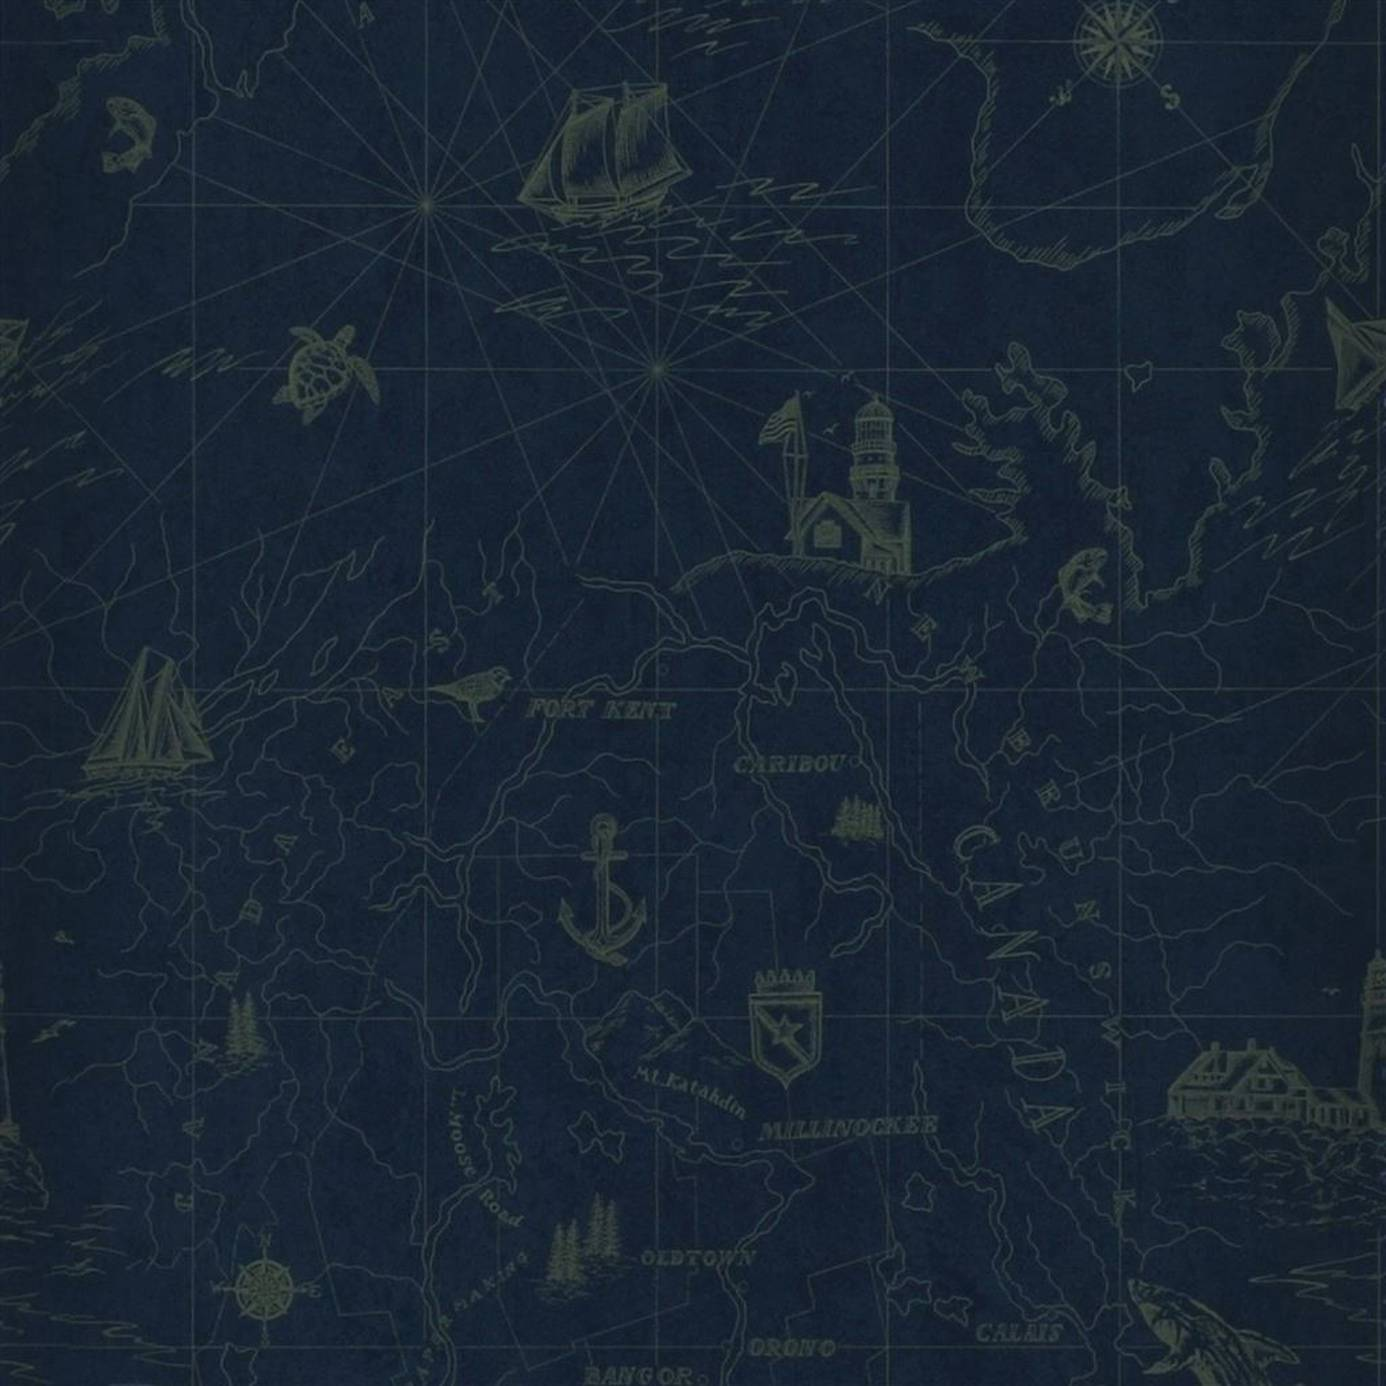 1386x1386 Ralph Lauren Searsport Map Wallpaper - RoyalProduct Code: PRL5027-04